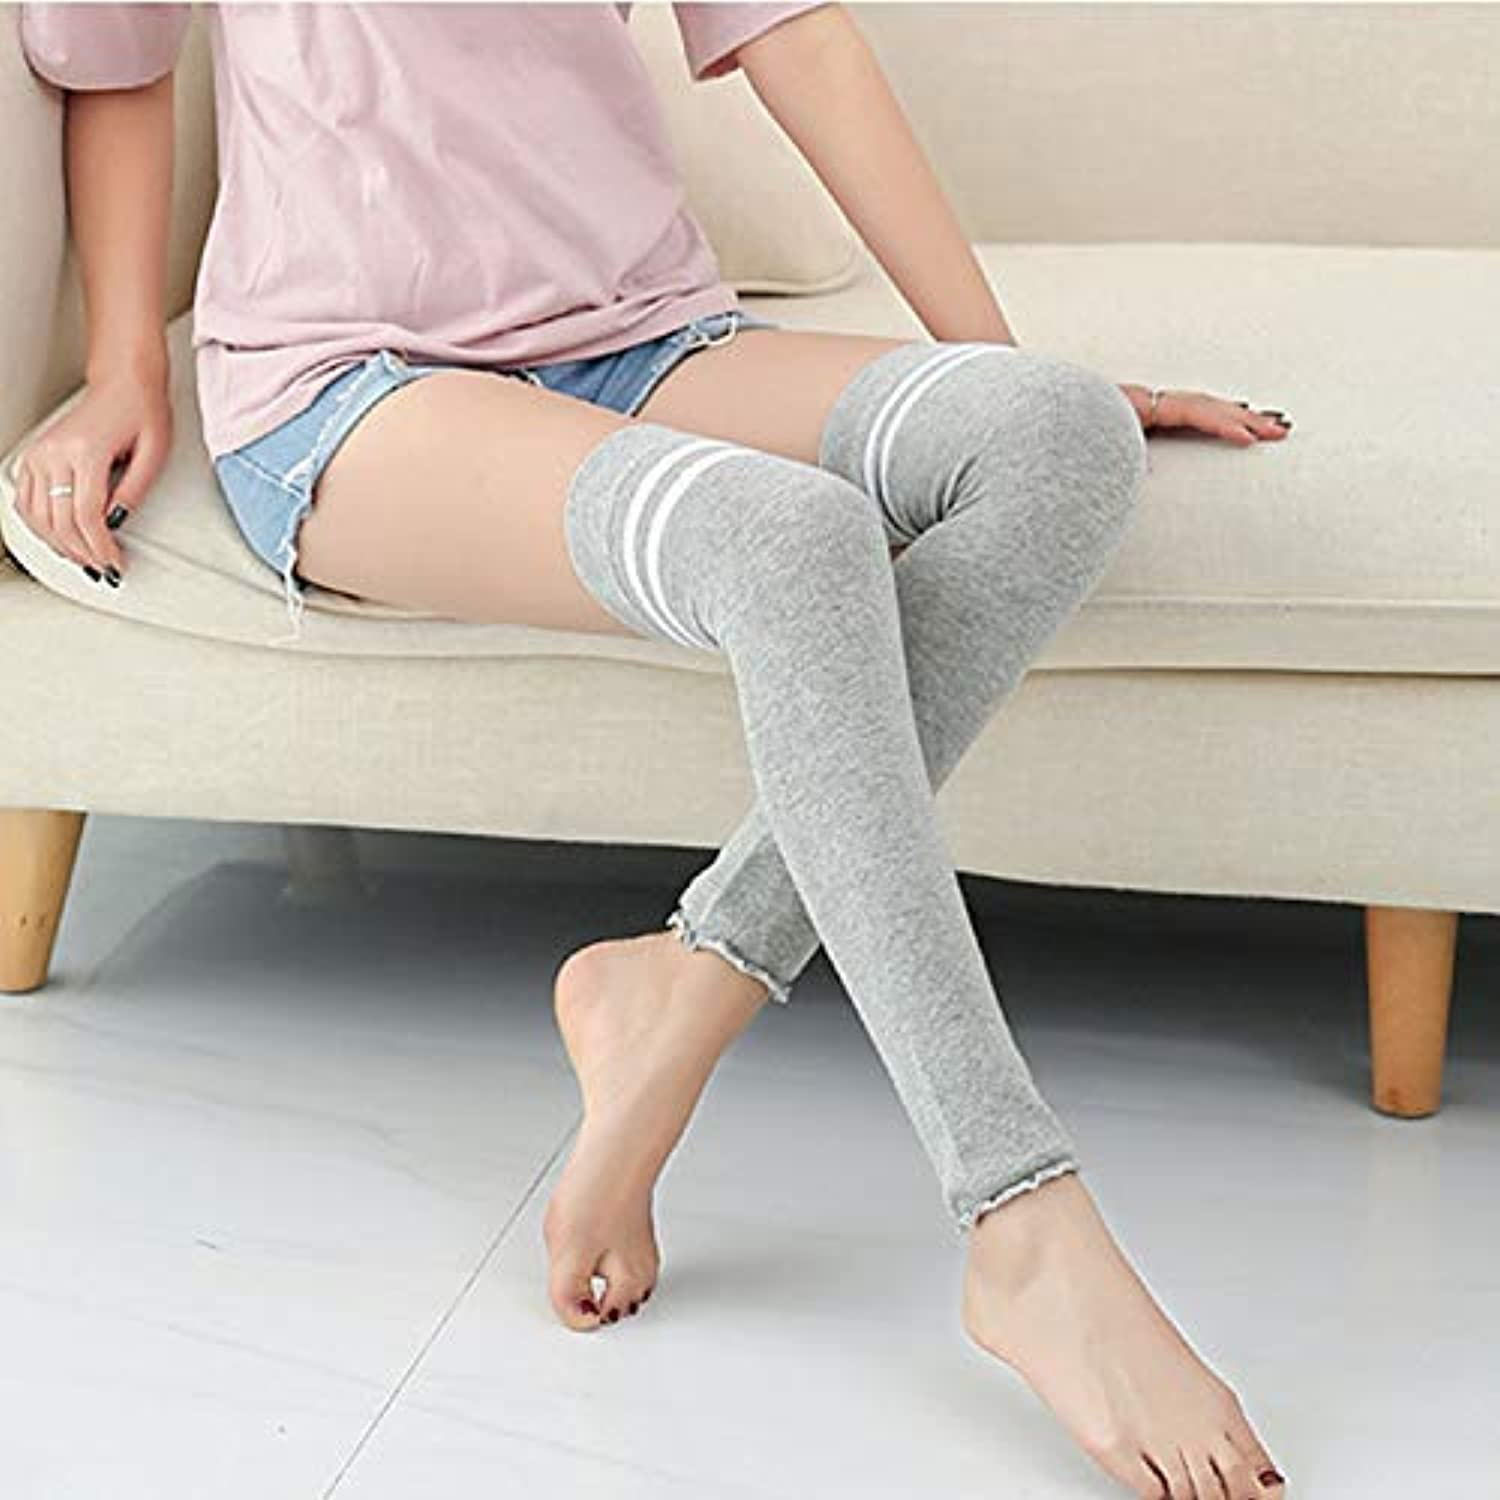 Comfortable Arm Warmer Leg Stocking HOME Japanese college wind spring and summer combed cotton long tube socks over the knee piled up socks air conditioning warm outdoor sports students (color   Grey)